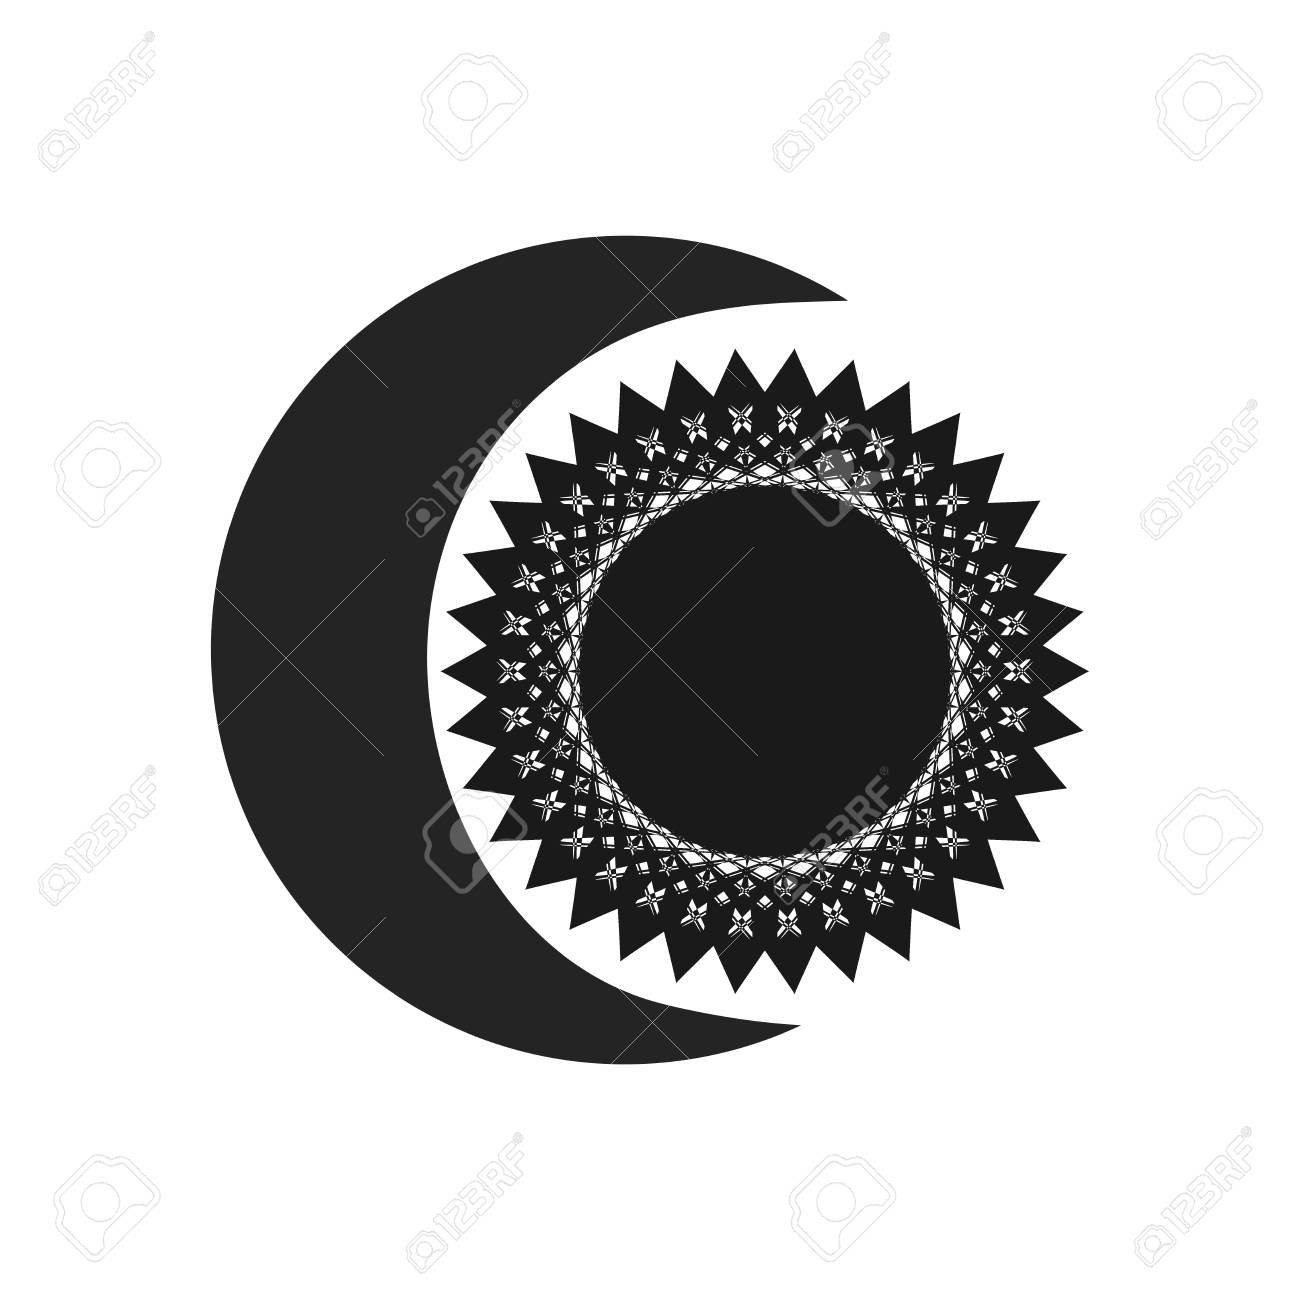 Black moon and sun on white background  Abstract geometric sign